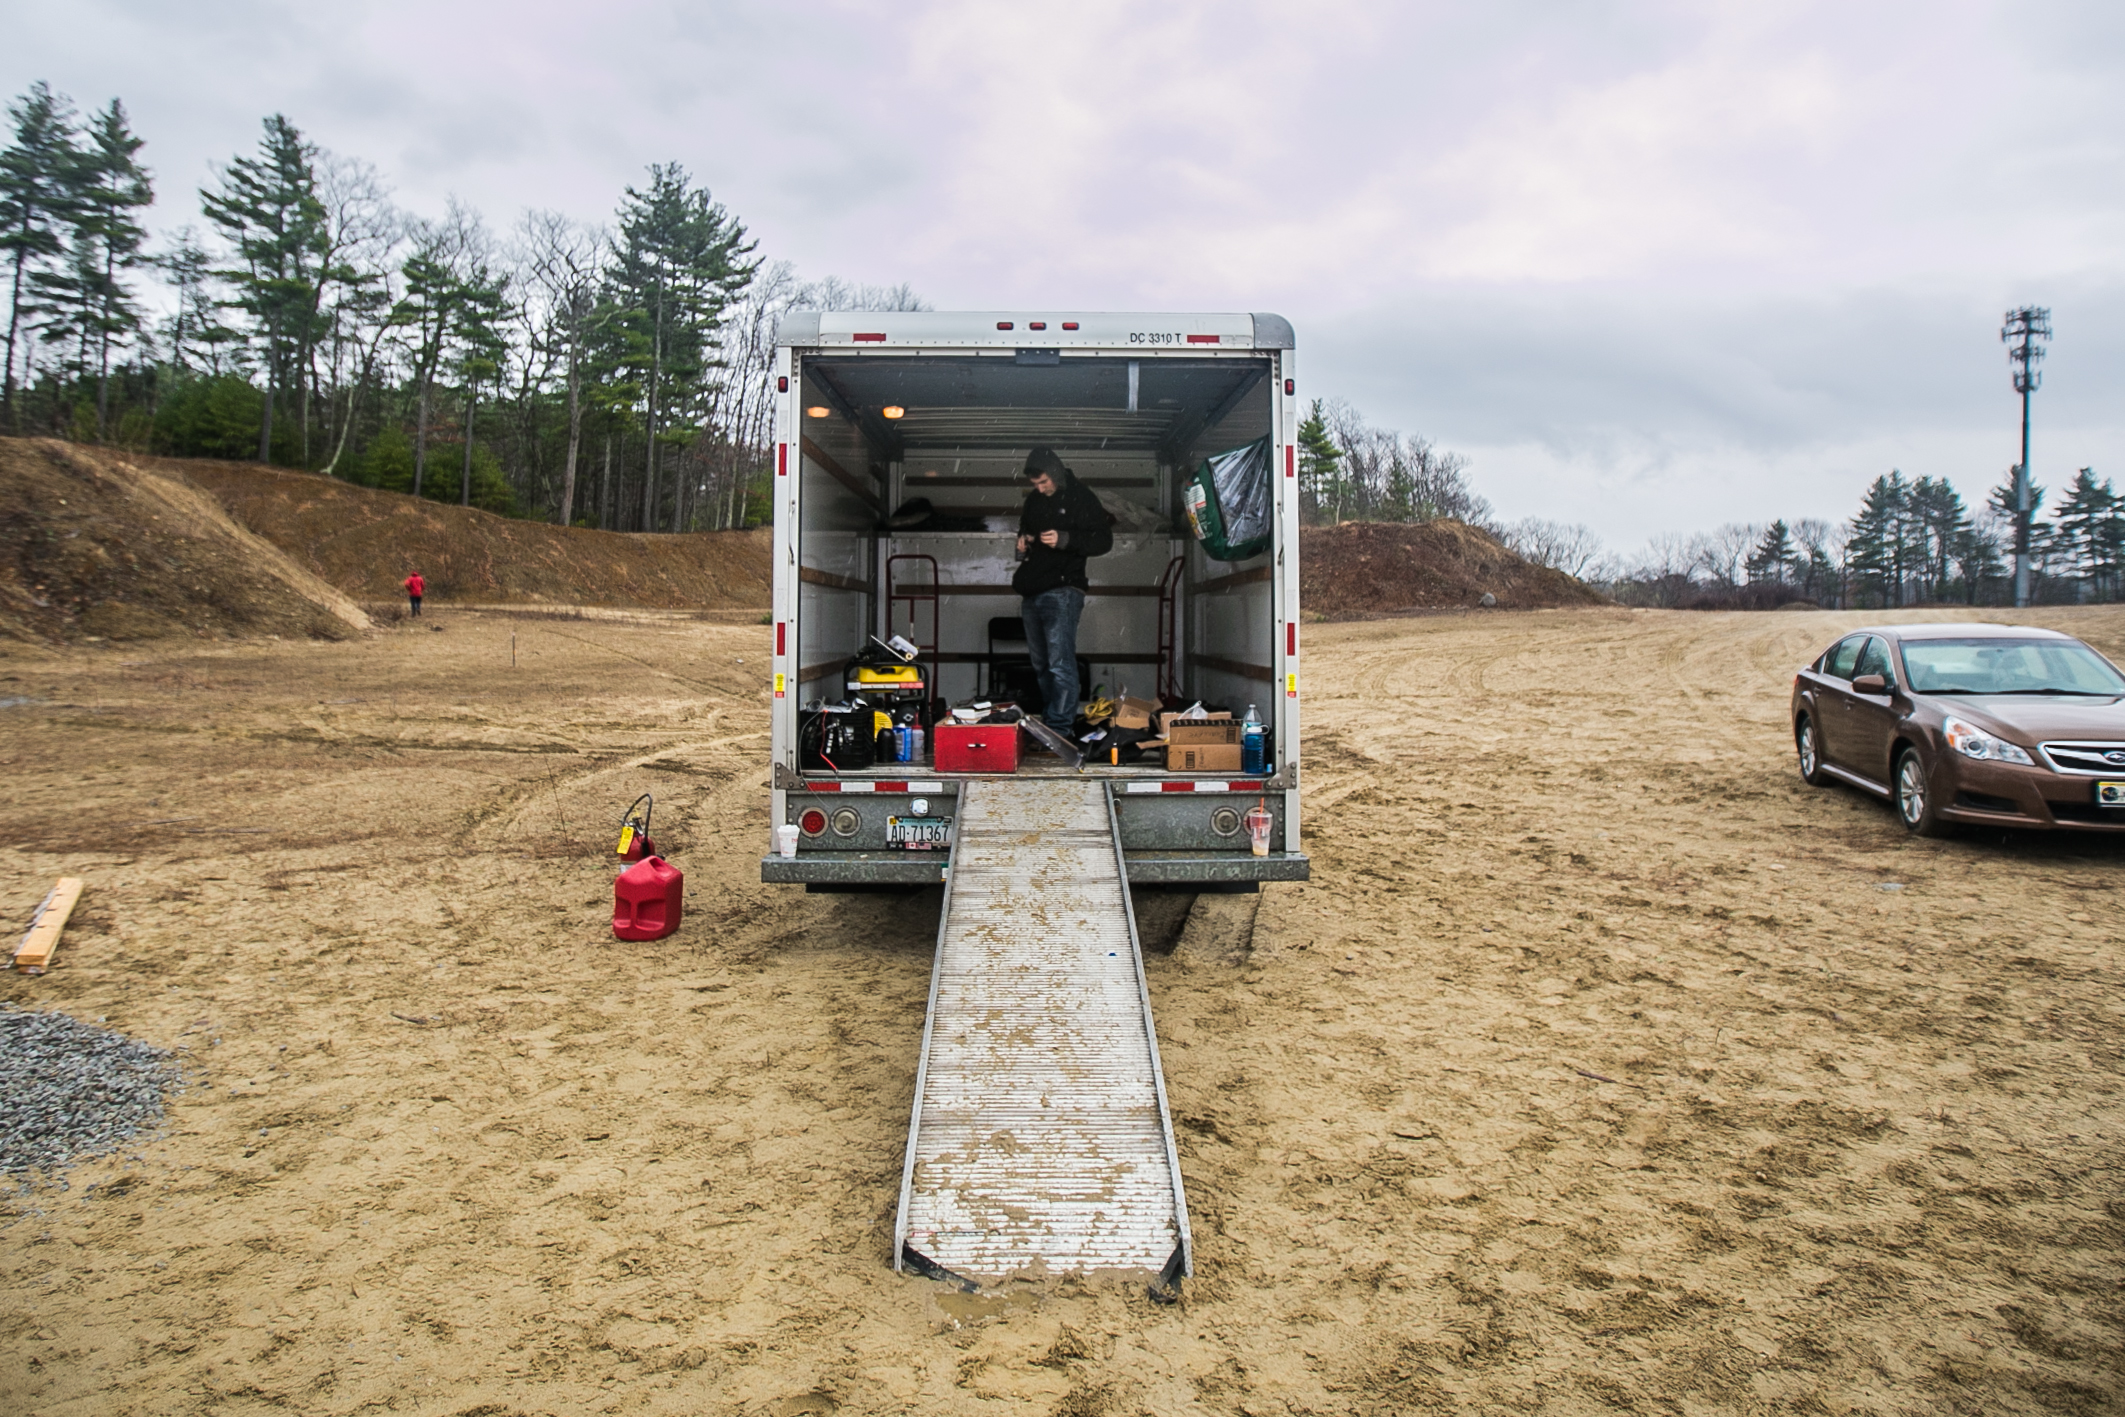 April 2, 2016 – Doug Lescarbeau, of the Boston University Rocket Propulsion Group, grabs supplies from the U-Haul truck during a test run of the liquid bi-propellant Lotus engine. The rocket development team established a safe testing site in the town of Sudbury, Mass. about 35 minuets outside of Boston. Over the past four years they have conducted over 20 engine tests at this location, and plan to reach space by the summer of 2017. Two of the Lotus engines will eventually be installed on the Starscraper, a 30 foot 1200 pound rocket, and launched from the Black Rock Desert in the summer of 2017. The Boston University team is in a tight race with the University of Southern California to be the first student designed and constructed rocket to reach space – or about 62 miles above the earth's surface.   ©  Mike Schwarz